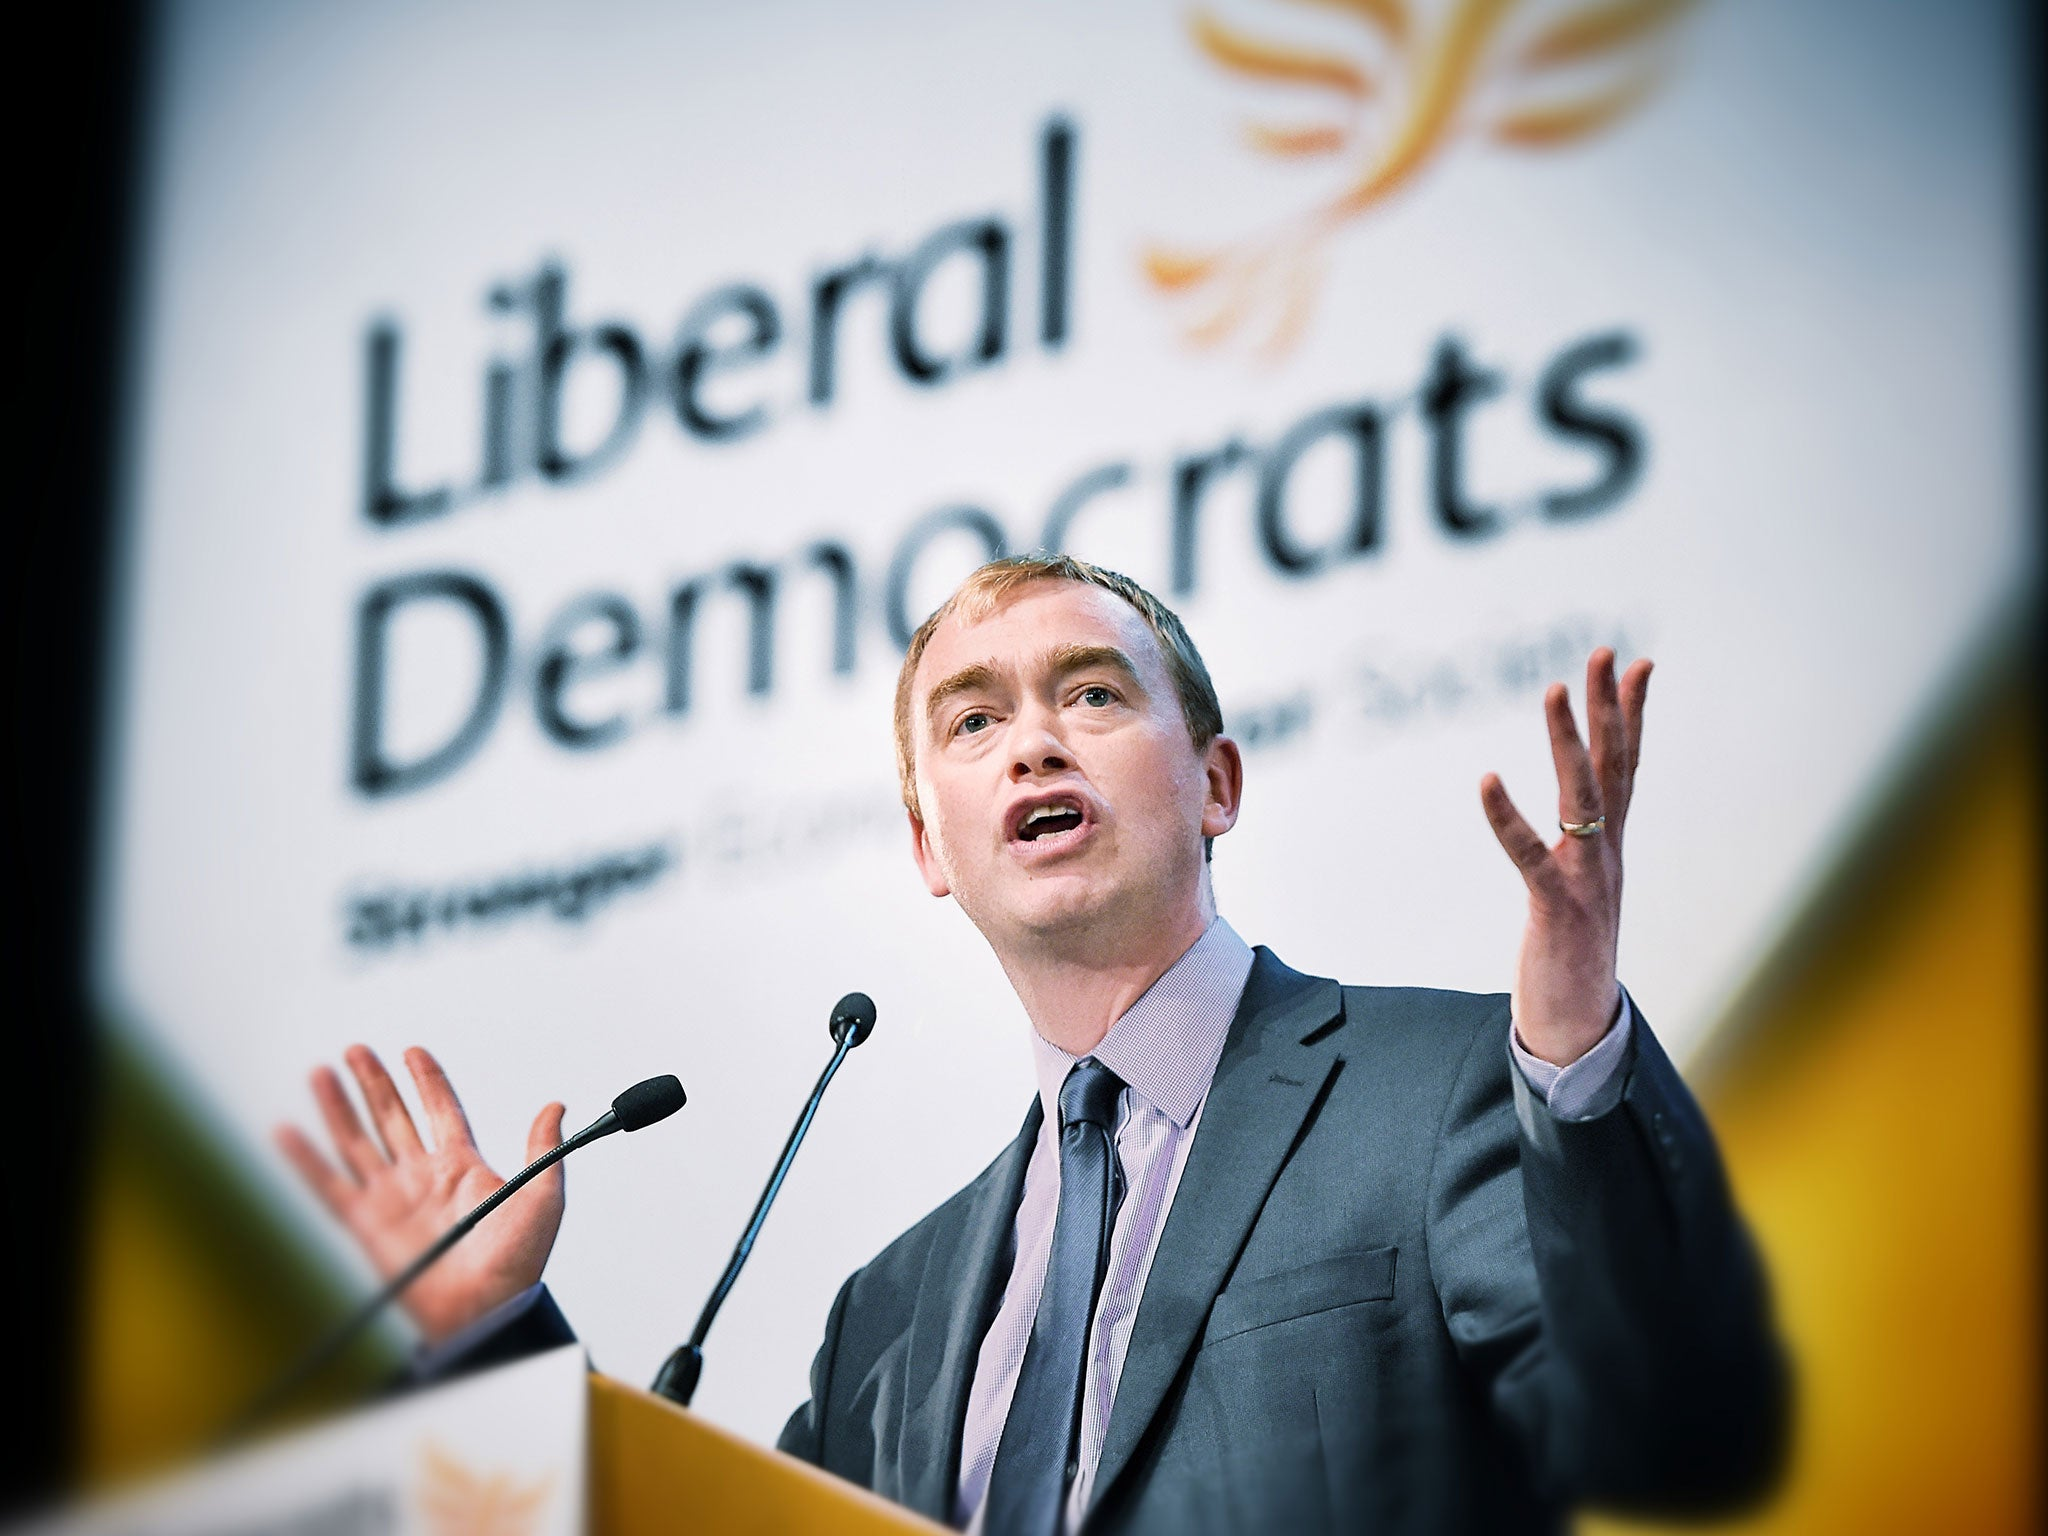 Remember the Lib Dems? They haven't forgotten what they're for